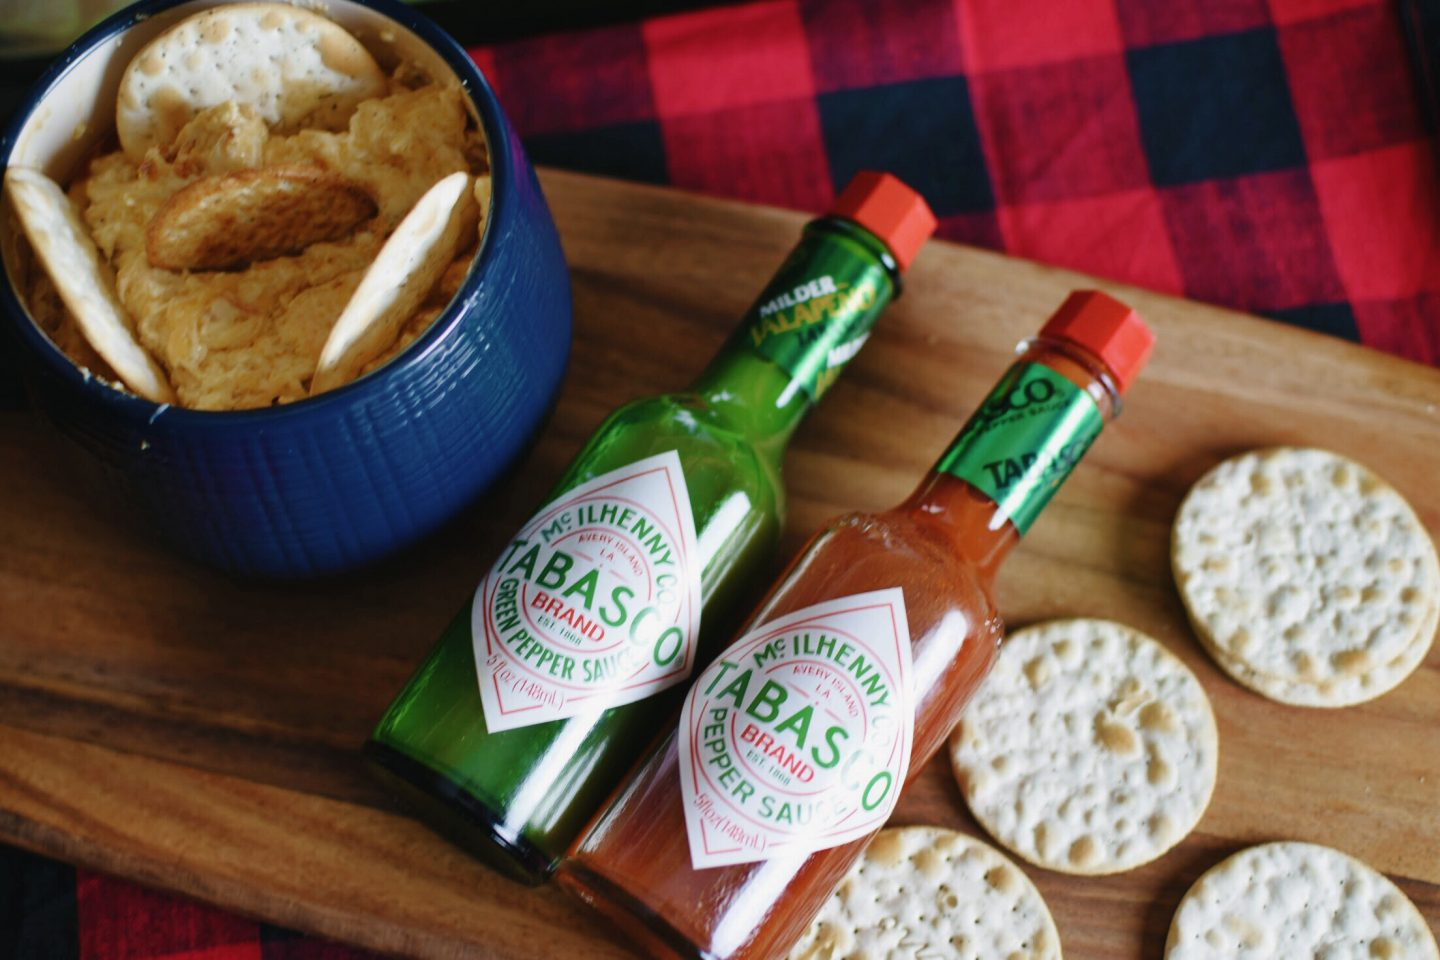 Spicy Dip Final Flat Lay